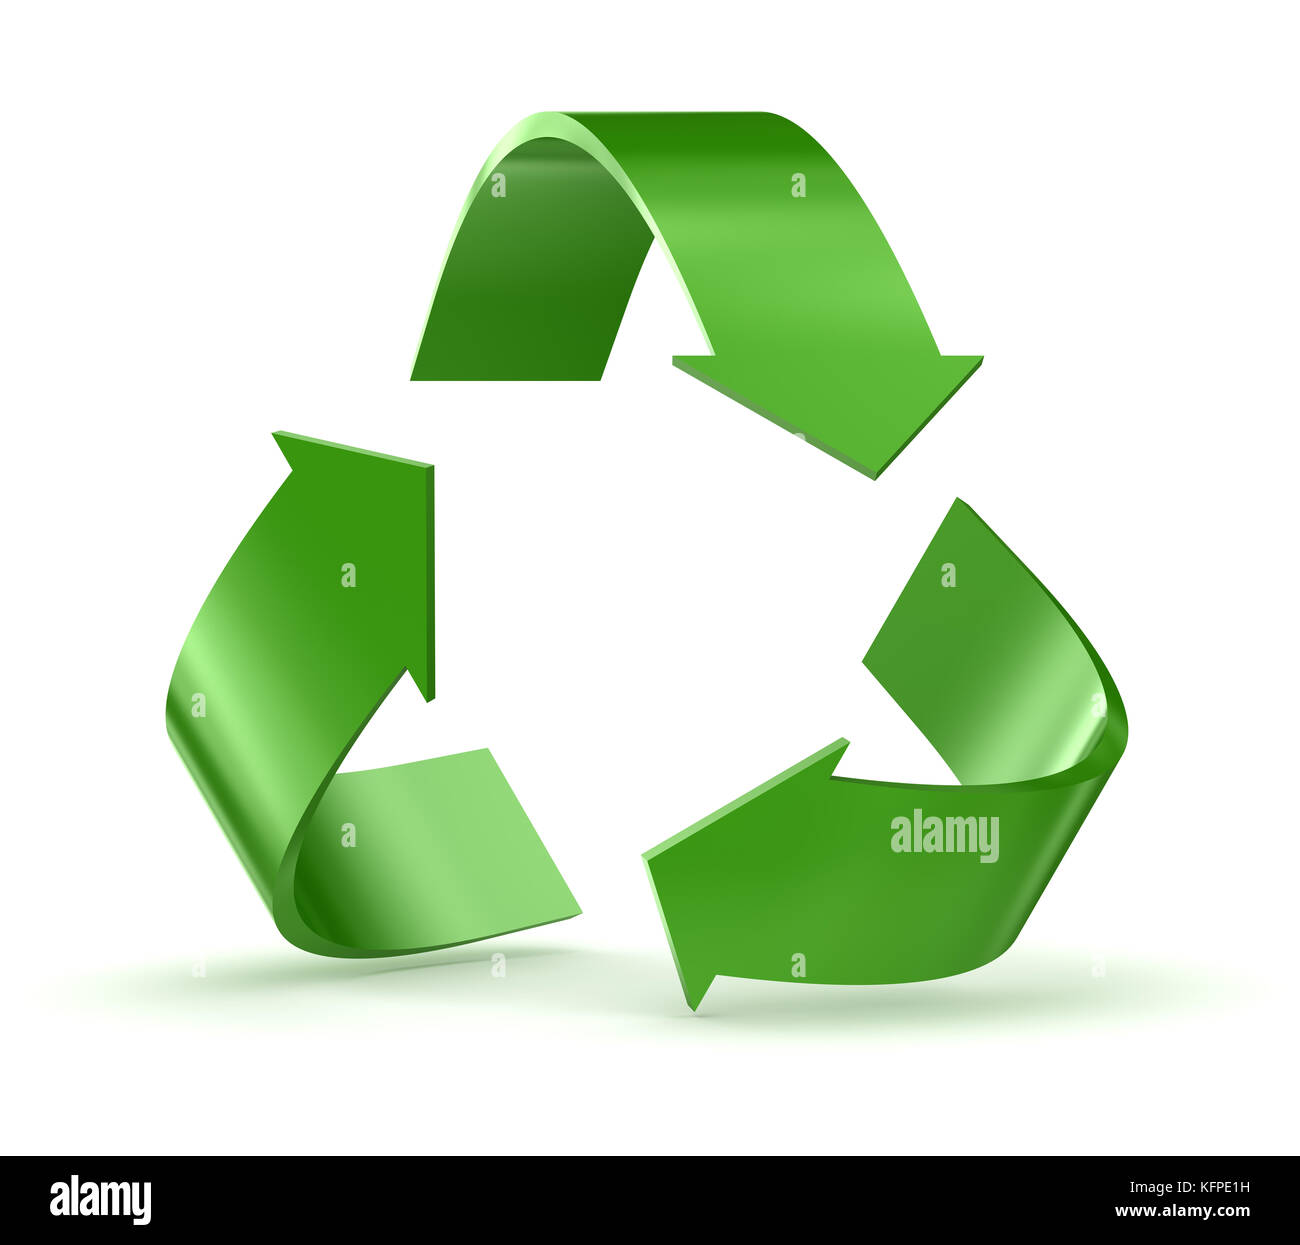 3d green arrow cycle illustration stock photos 3d green arrow recycle symbol 3d render and computer generated image stock image buycottarizona Choice Image